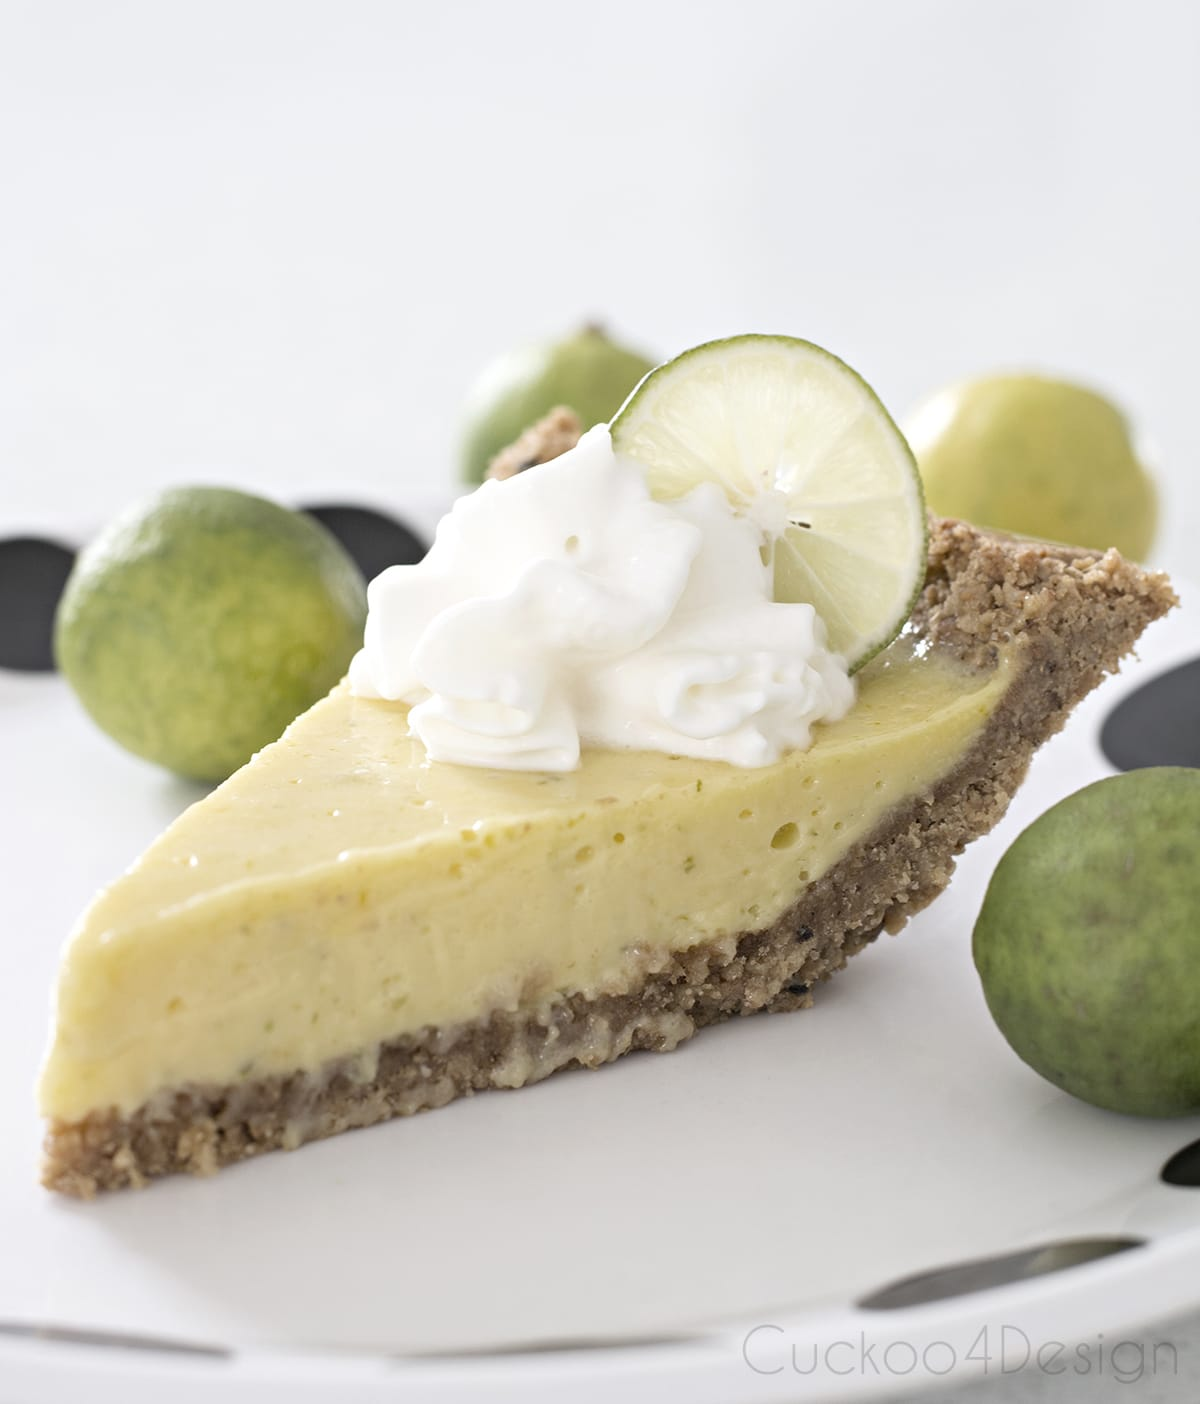 gluten Free Key Lime Pie with fresh key limes